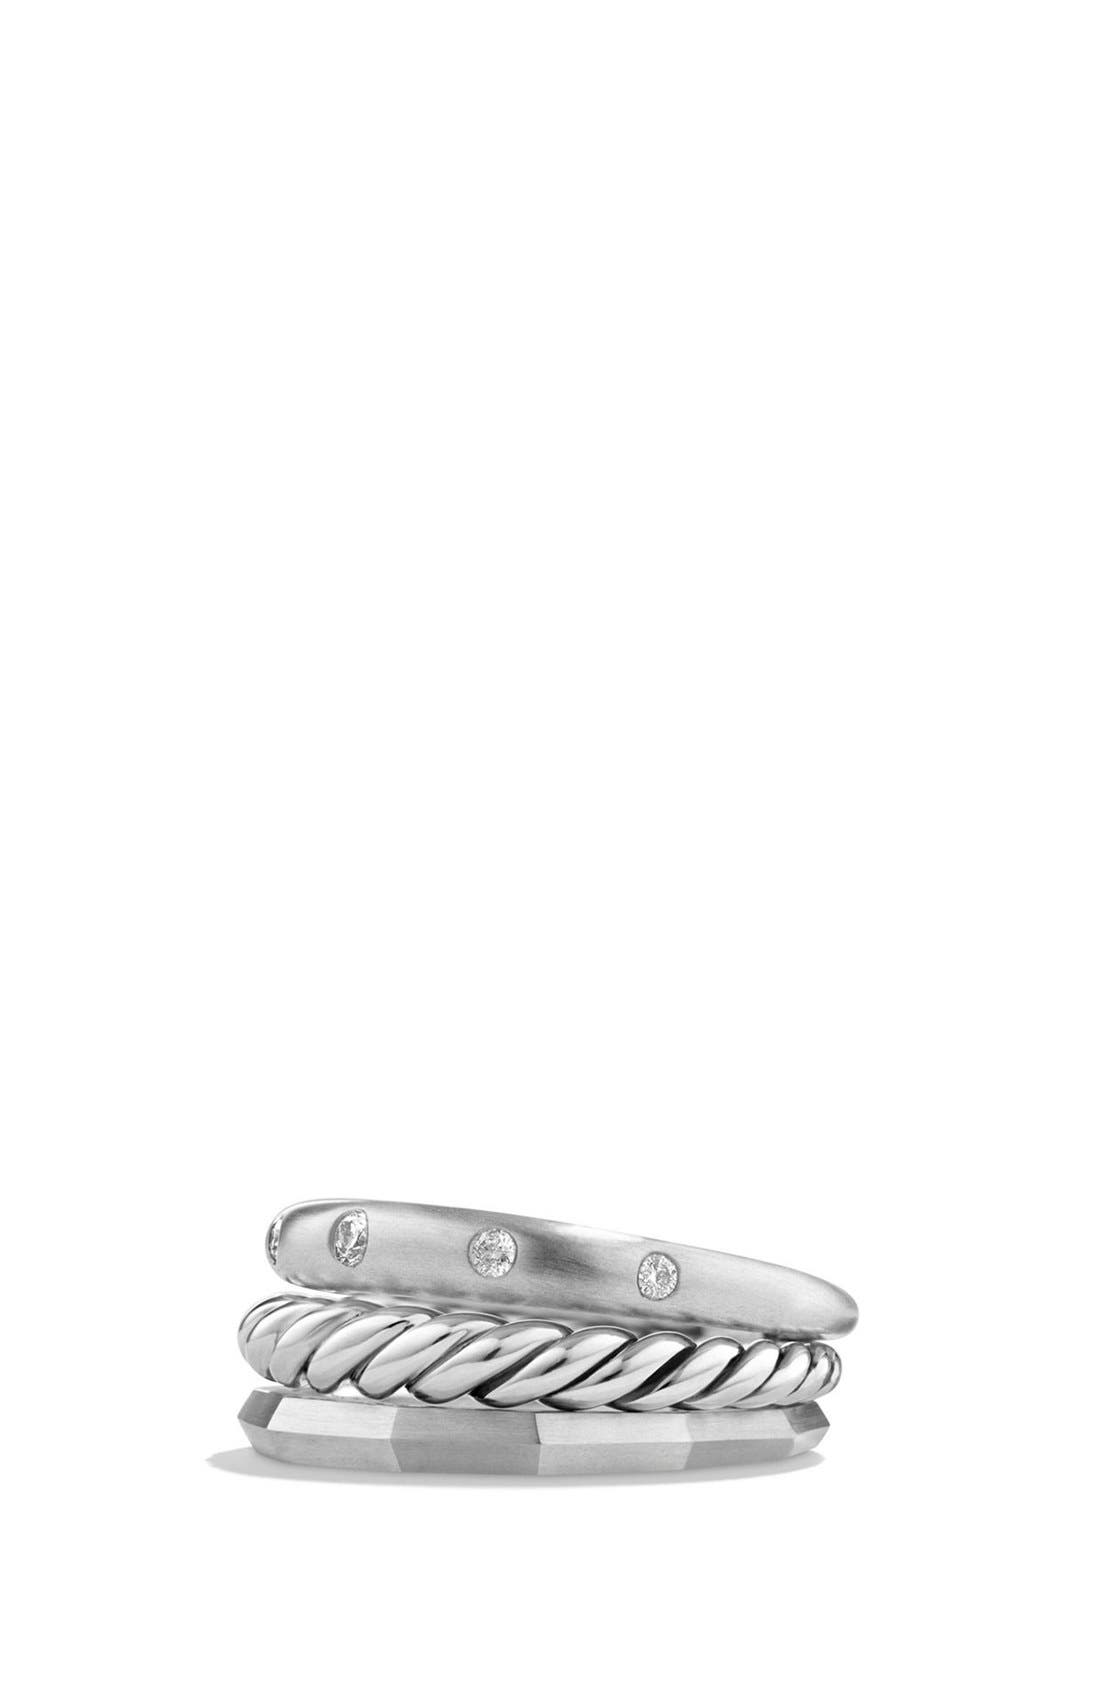 David Yurman 'Stax' Ring with Diamonds